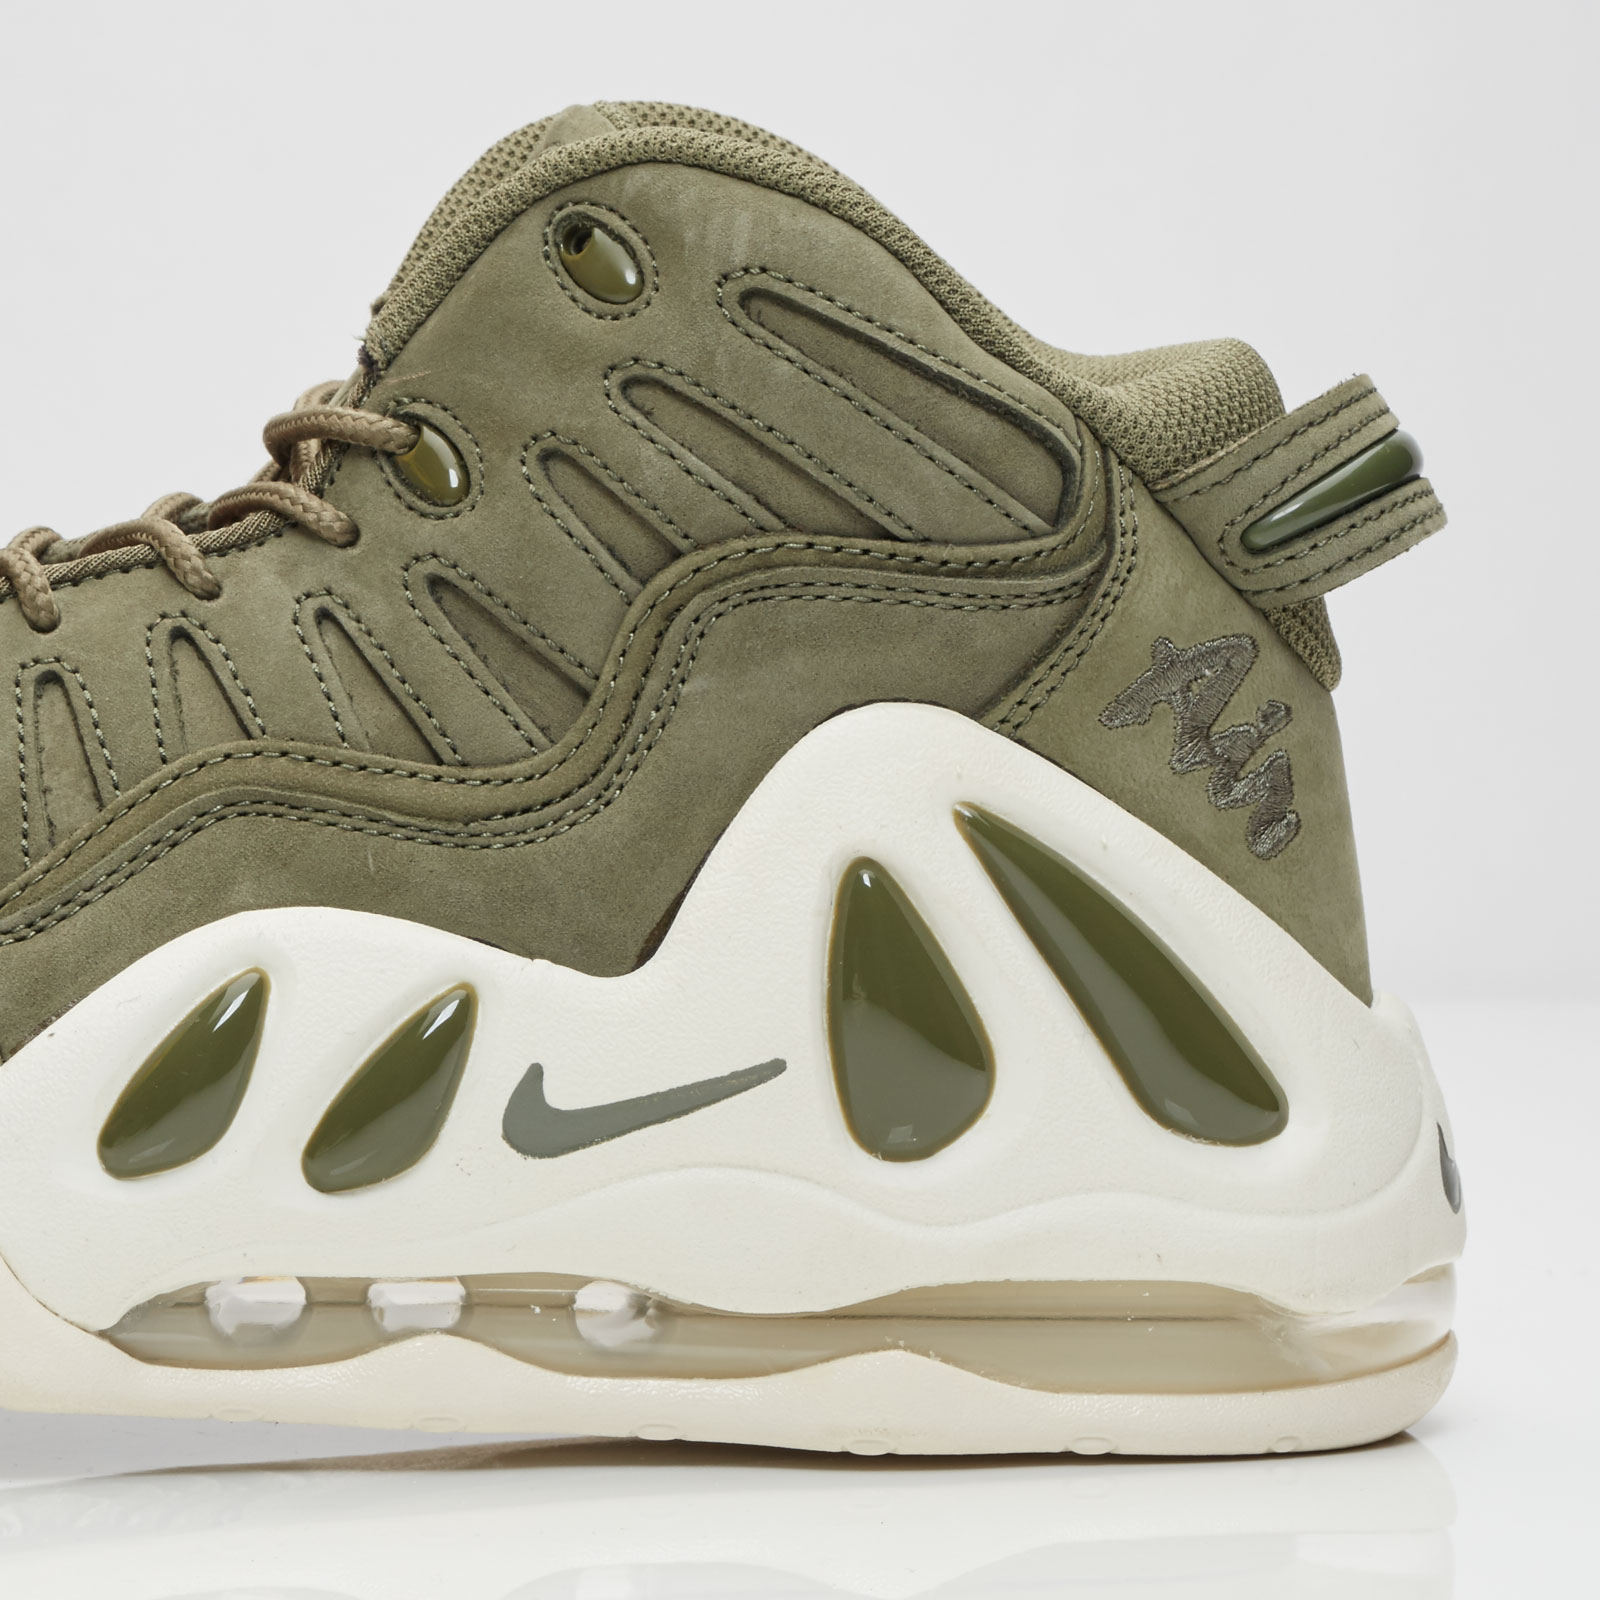 e9ad900b3cd1c Nike Air Max Uptempo 97 - 399207-300 - Sneakersnstuff | sneakers &  streetwear online since 1999